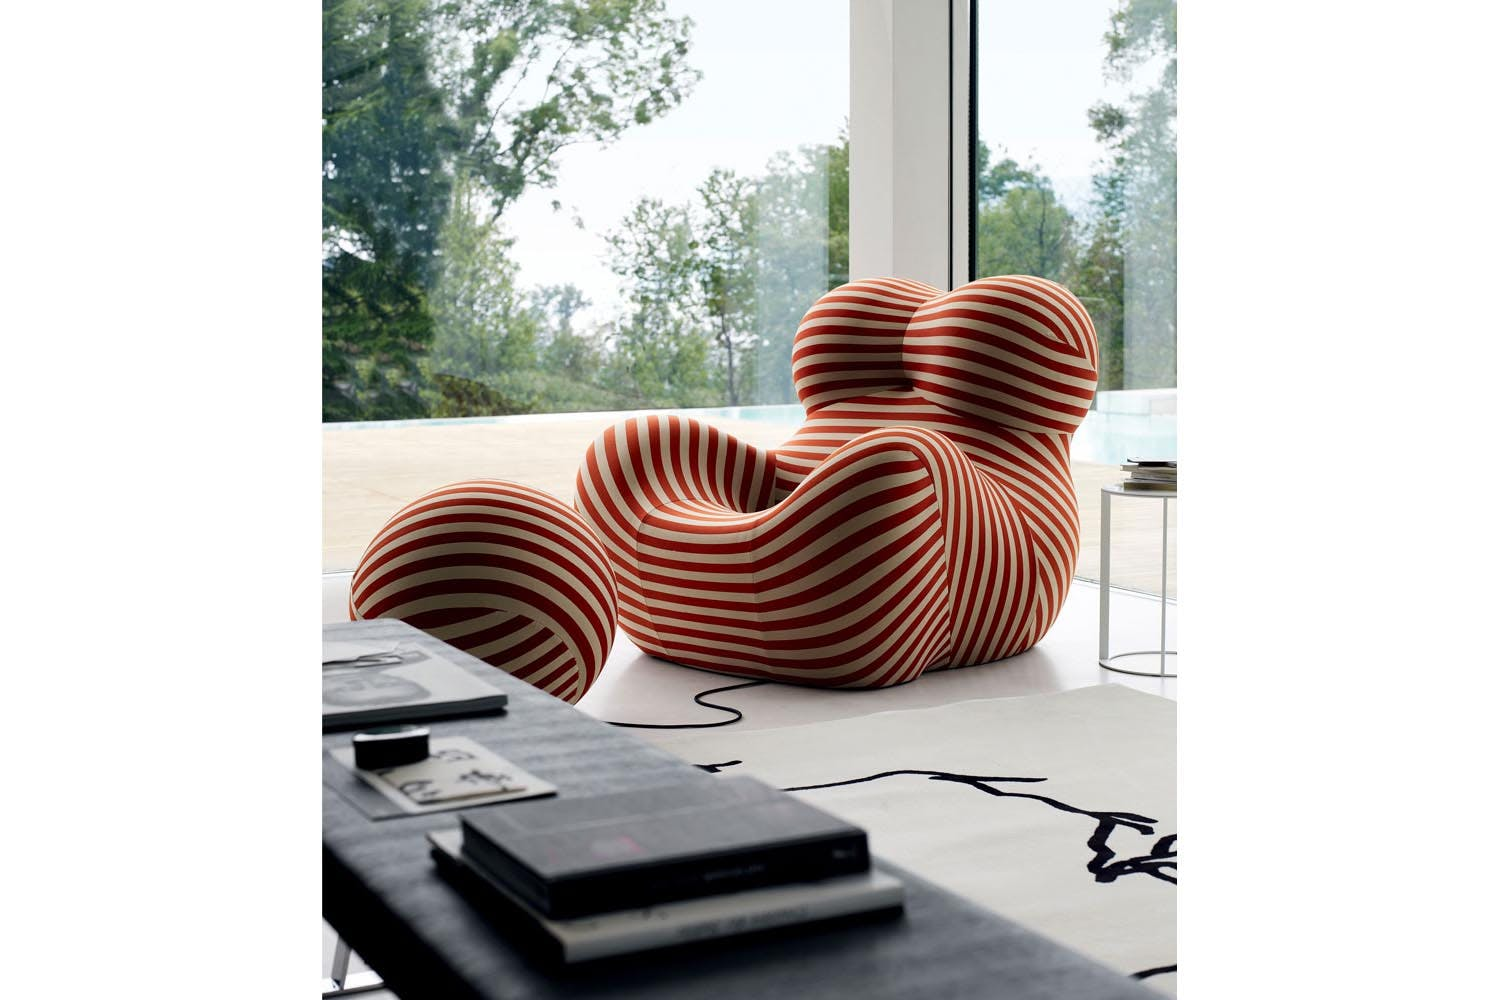 up series 2000 up5 6 armchair ottoman by gaetano pesce for b b italia space furniture. Black Bedroom Furniture Sets. Home Design Ideas